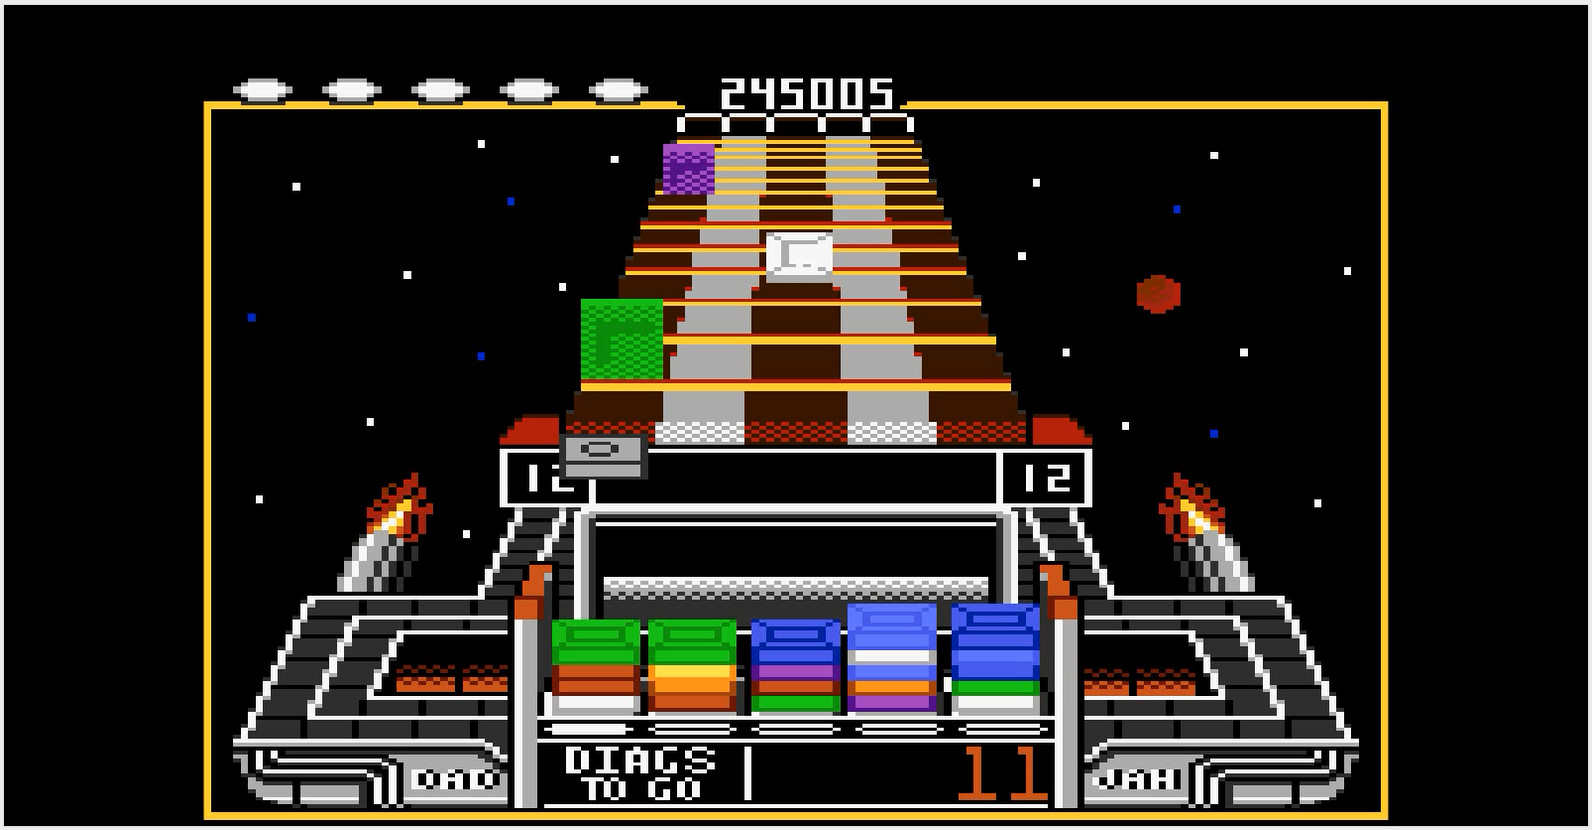 Klax: Easy [Level 11 Start] 245,005 points